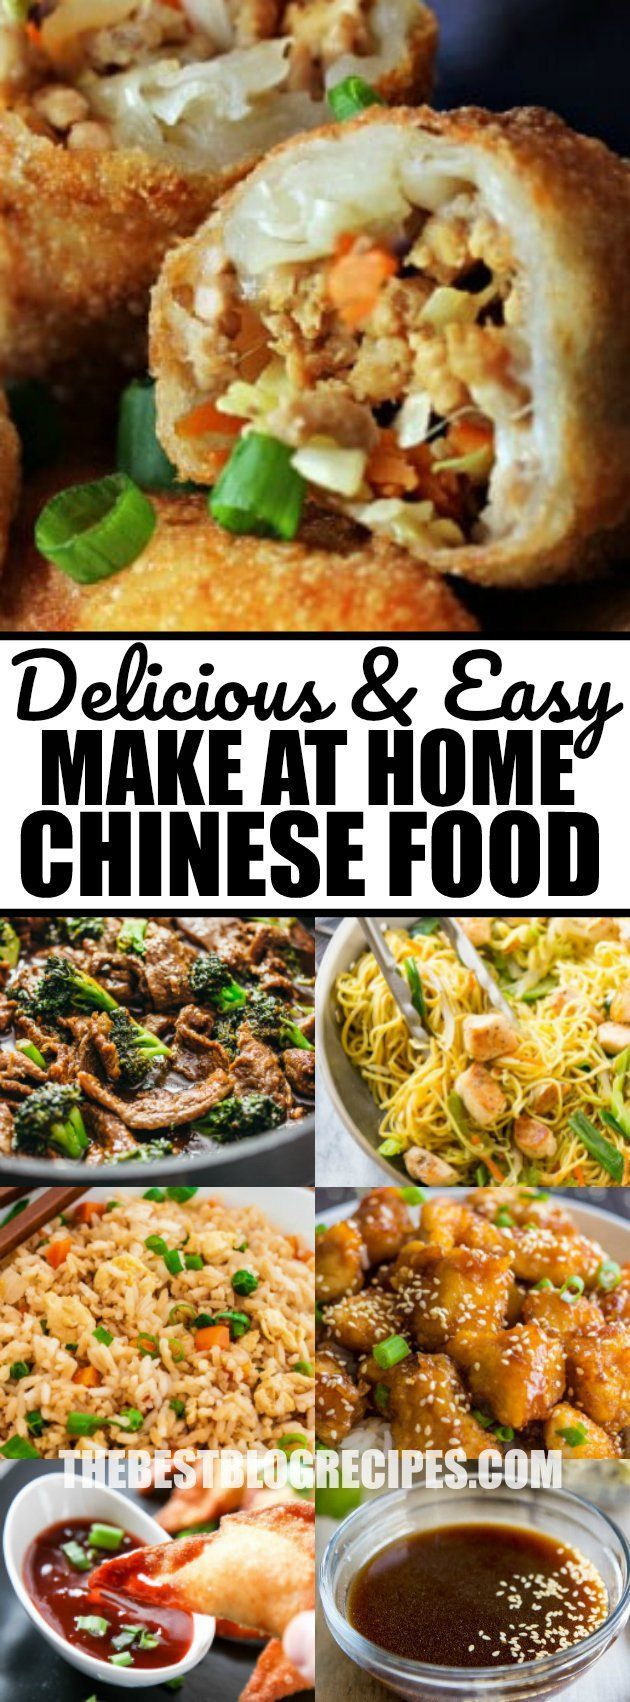 Delicious easy make at home chinese food food d pinterest delicious easy make at home chinese food forumfinder Images